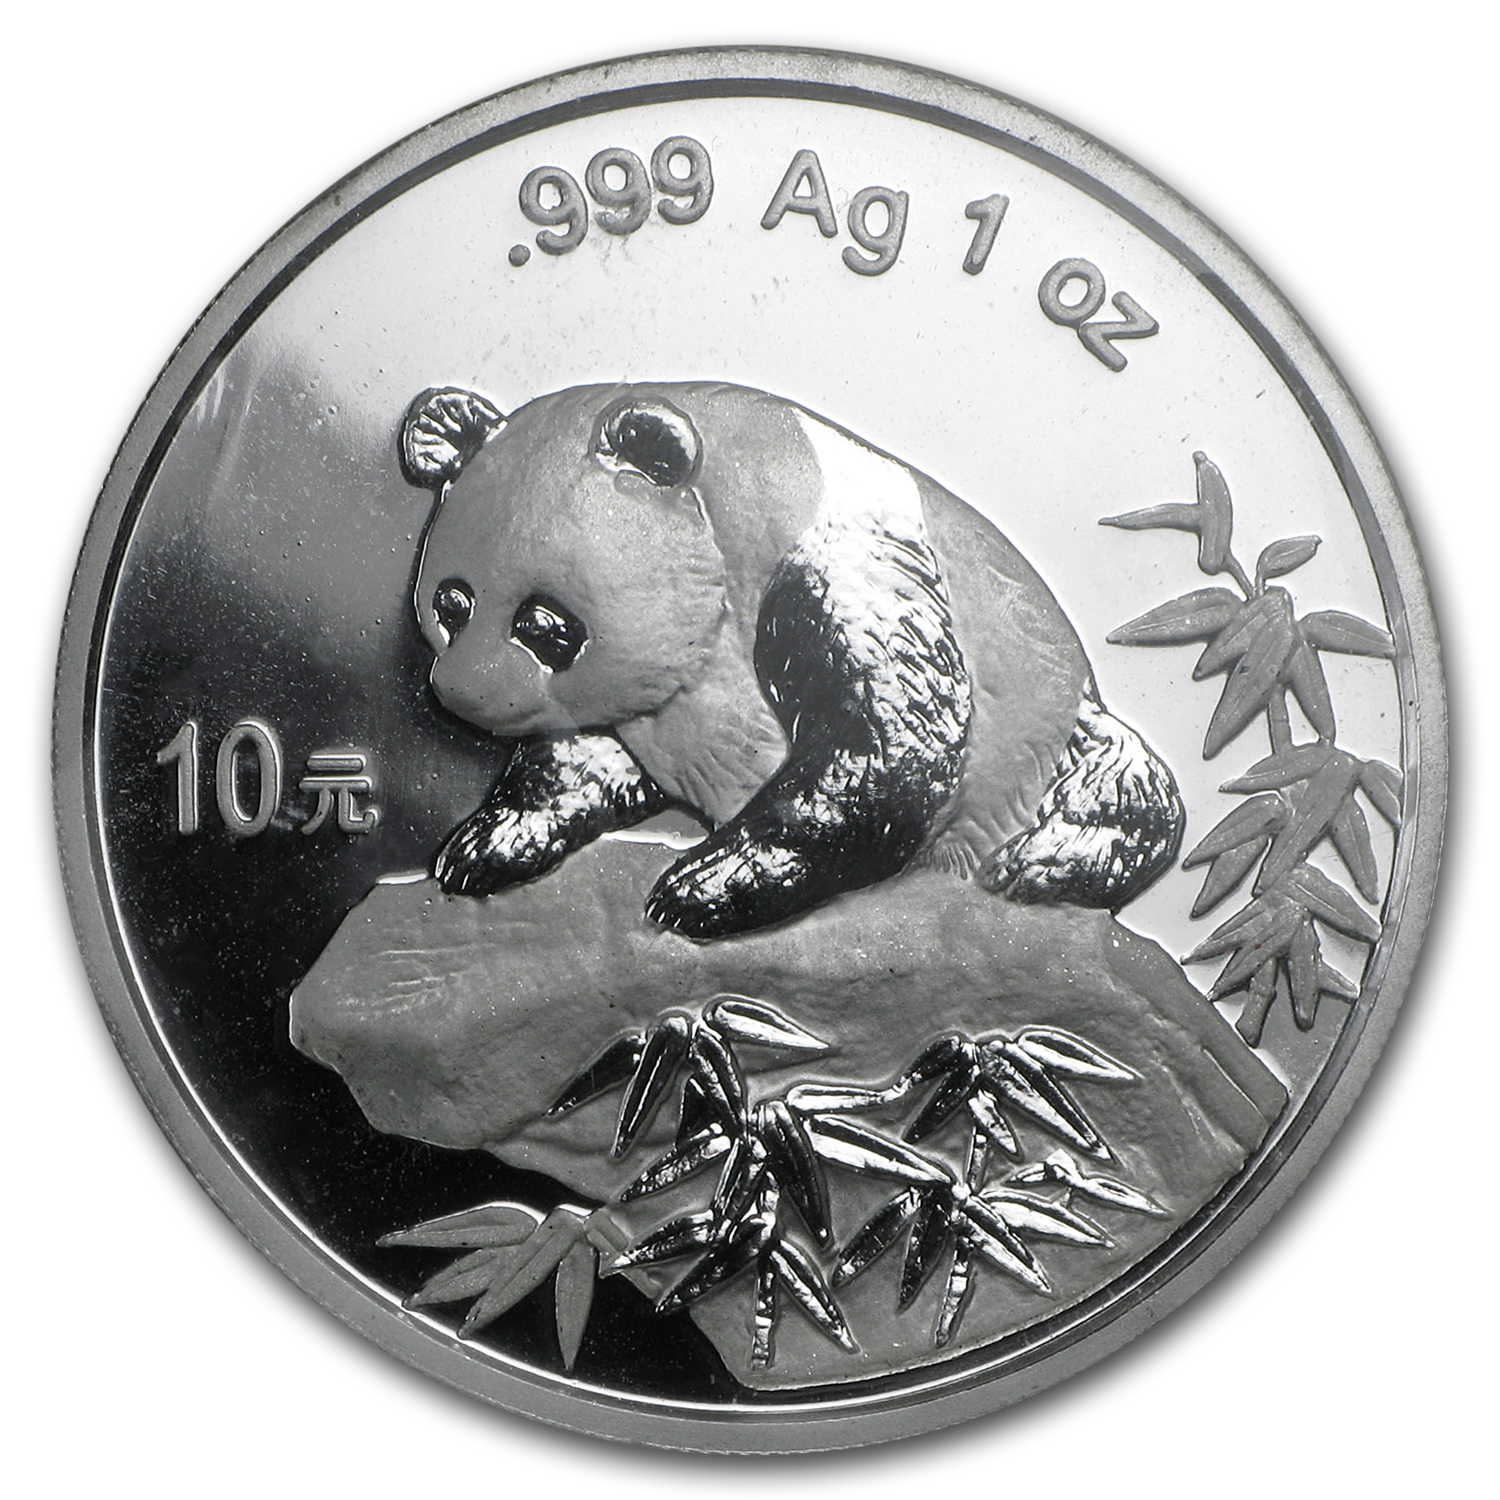 1999 China 1 oz Silver Panda Large Date Plain 1 (Sealed)